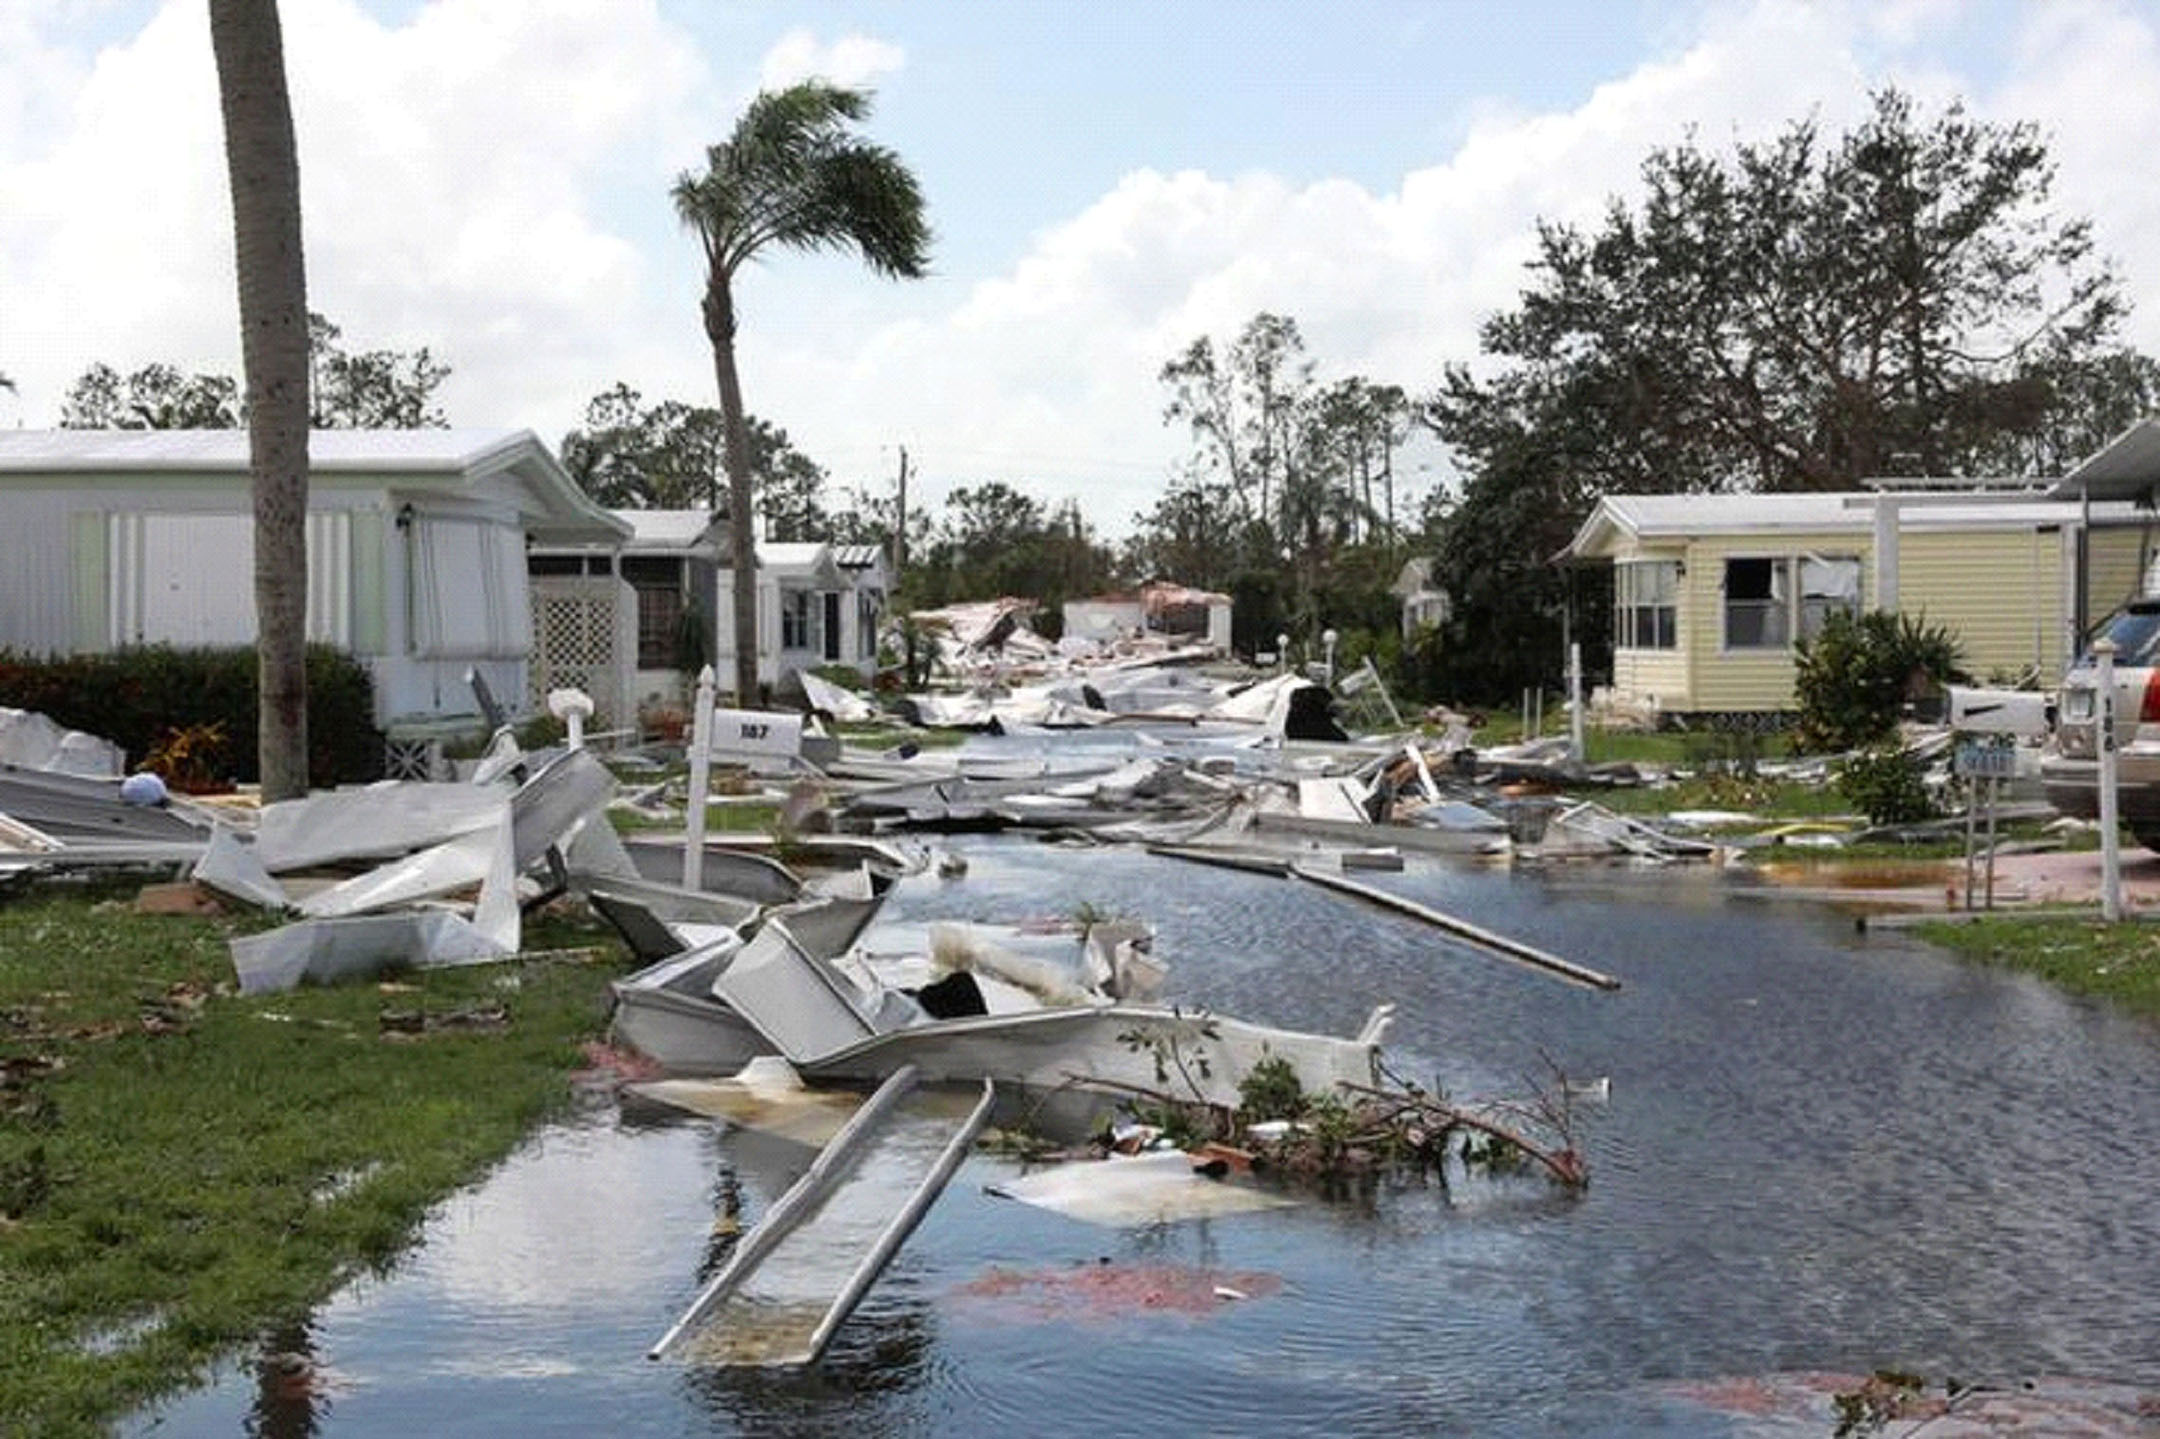 Dead in Florida Crash as Irma Starts to Impact Area